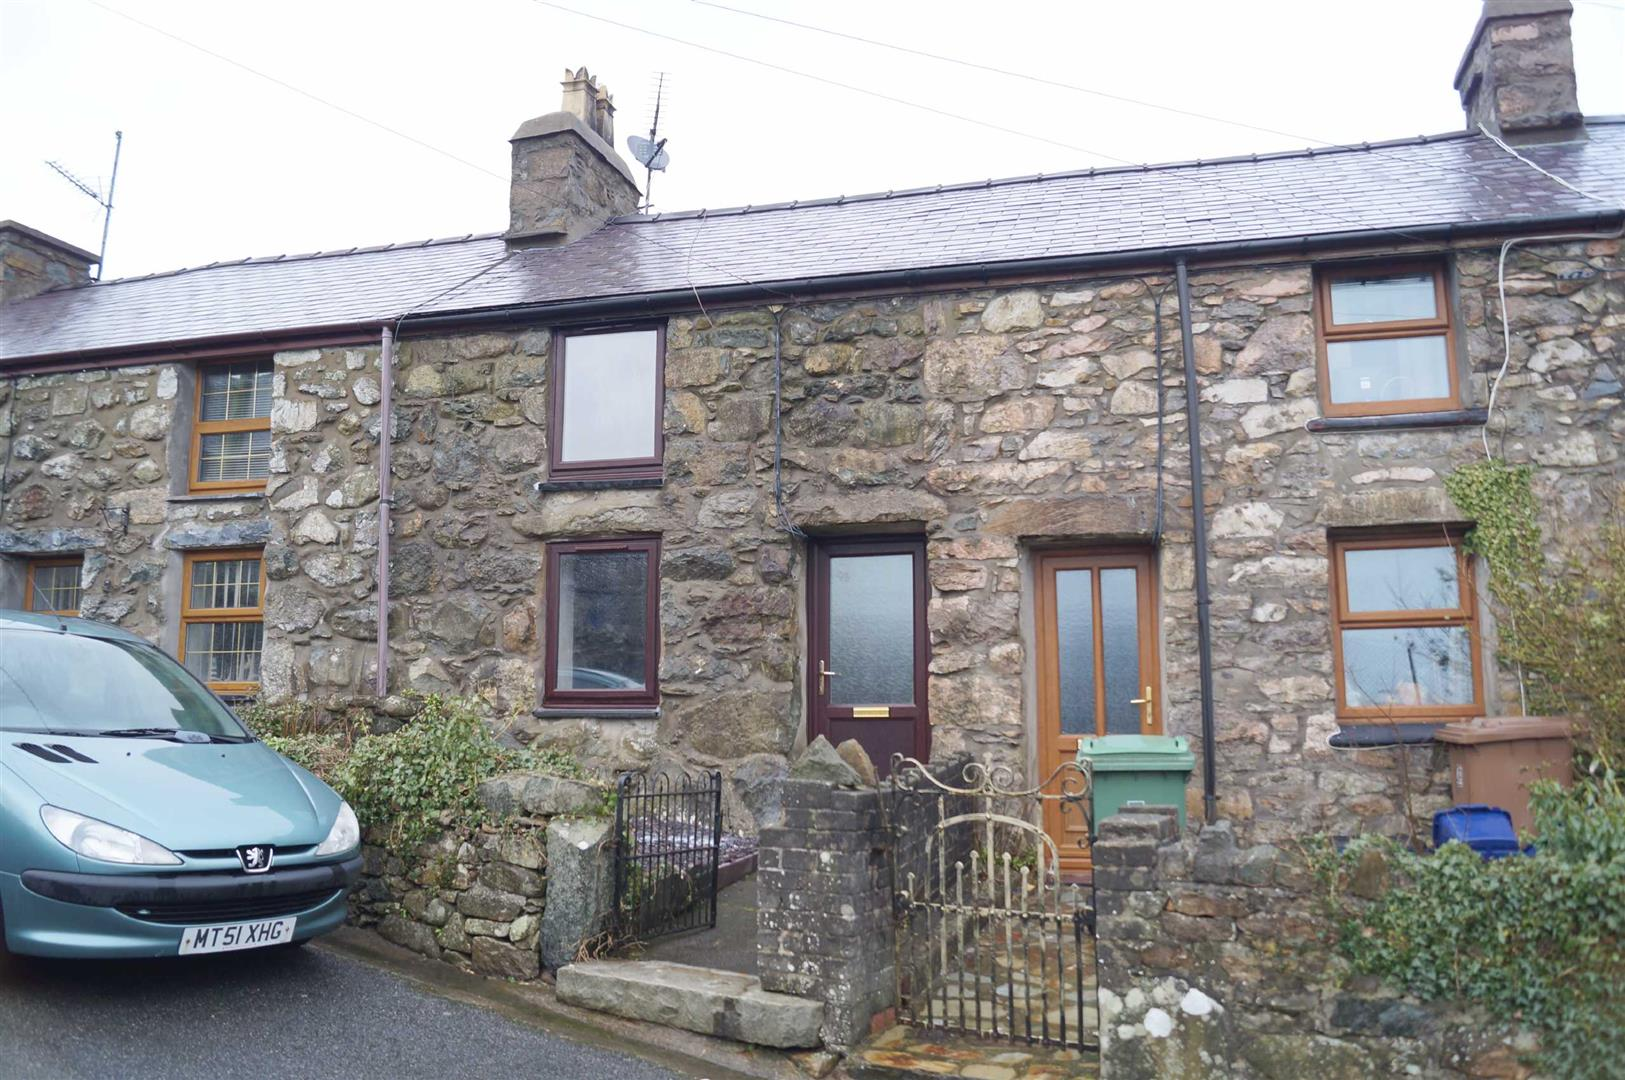 Tan Y Fynwent, Llanaelhaearn - £82,500/Reduced to